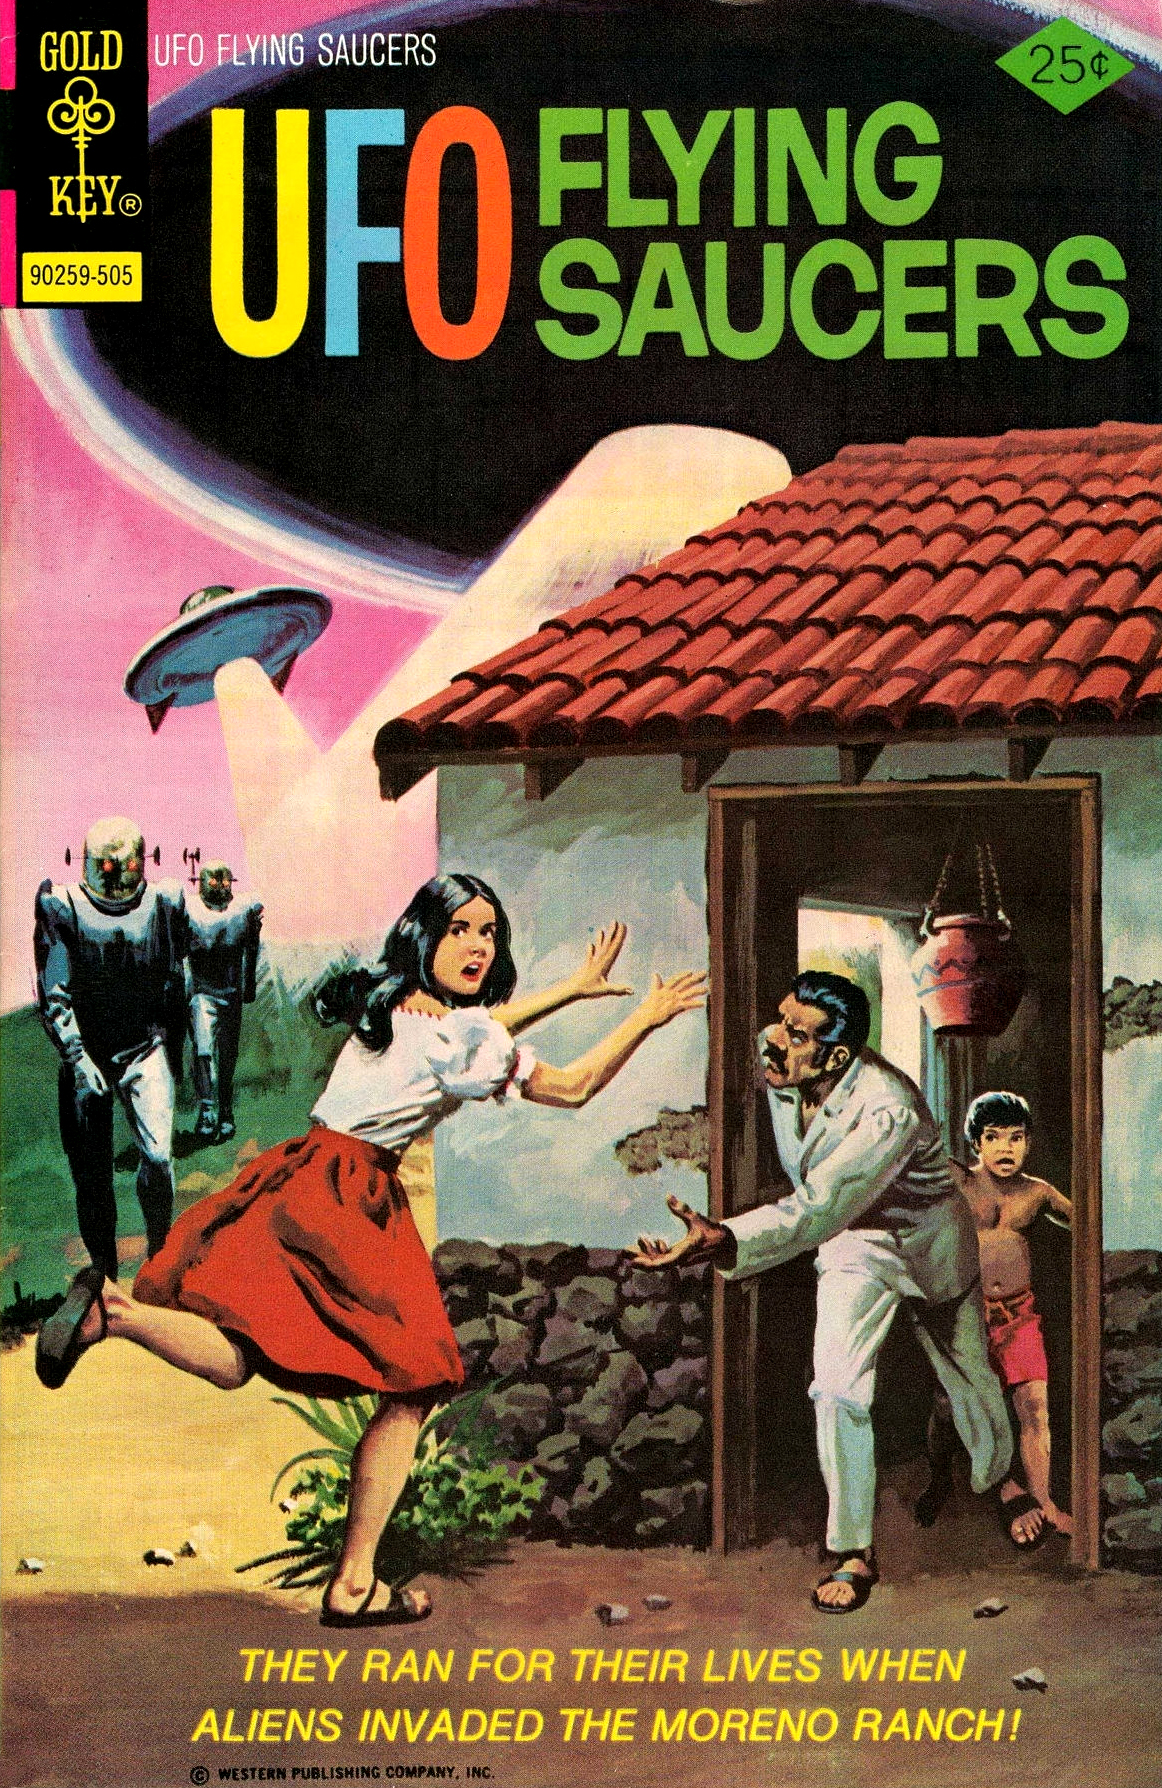 UFO Flying Saucers #6 (Gold Key, 1975)